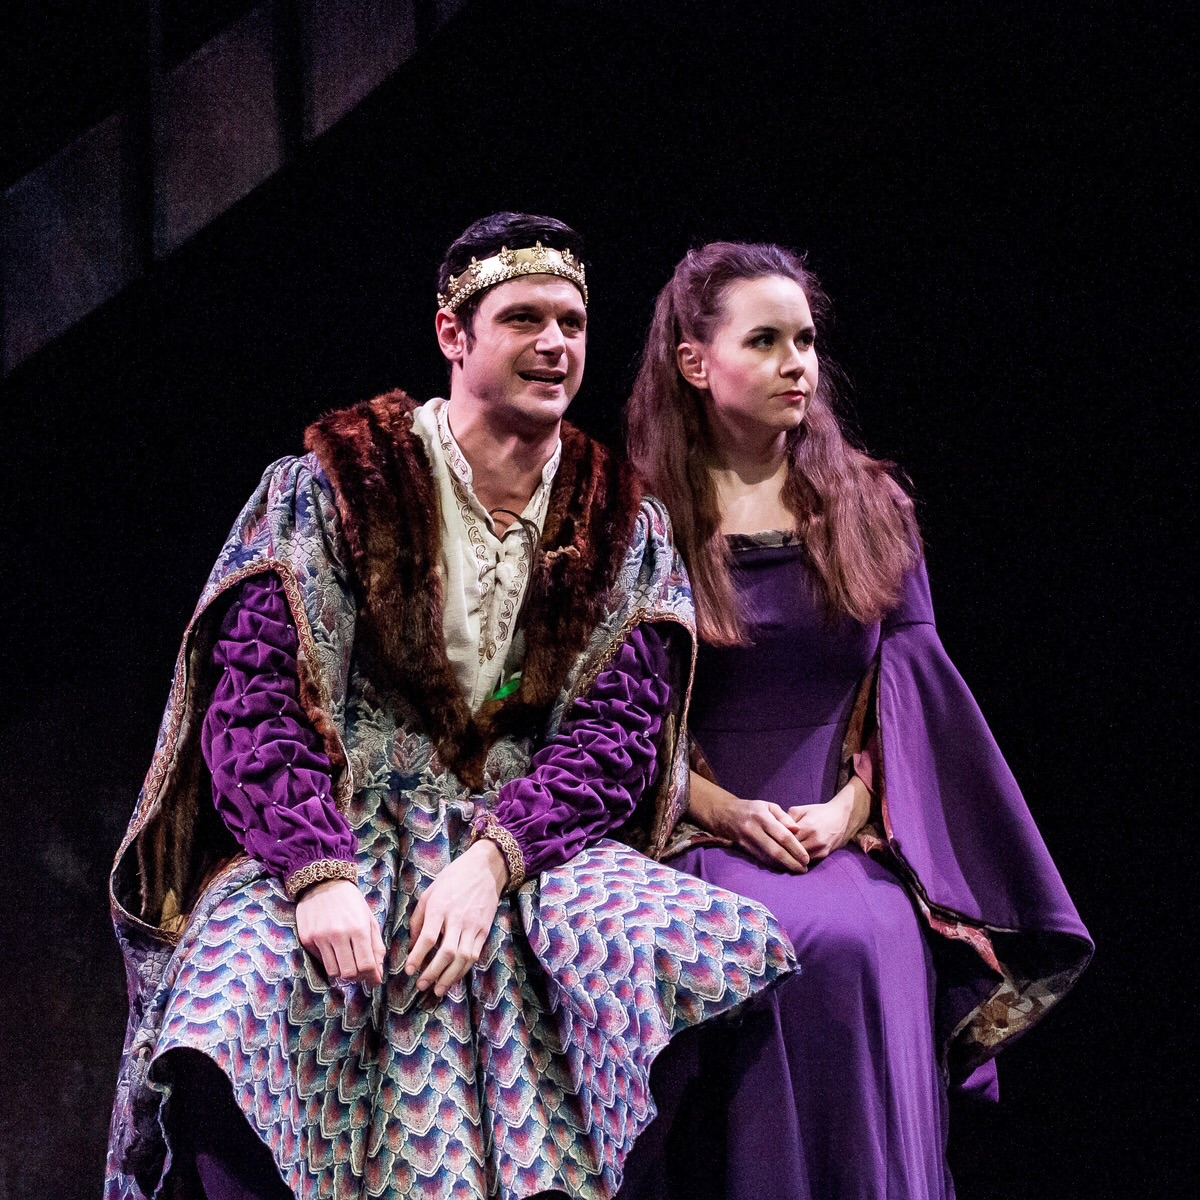 Evan Nasteff (King Philip of France) and Audra Honaker (Alais)